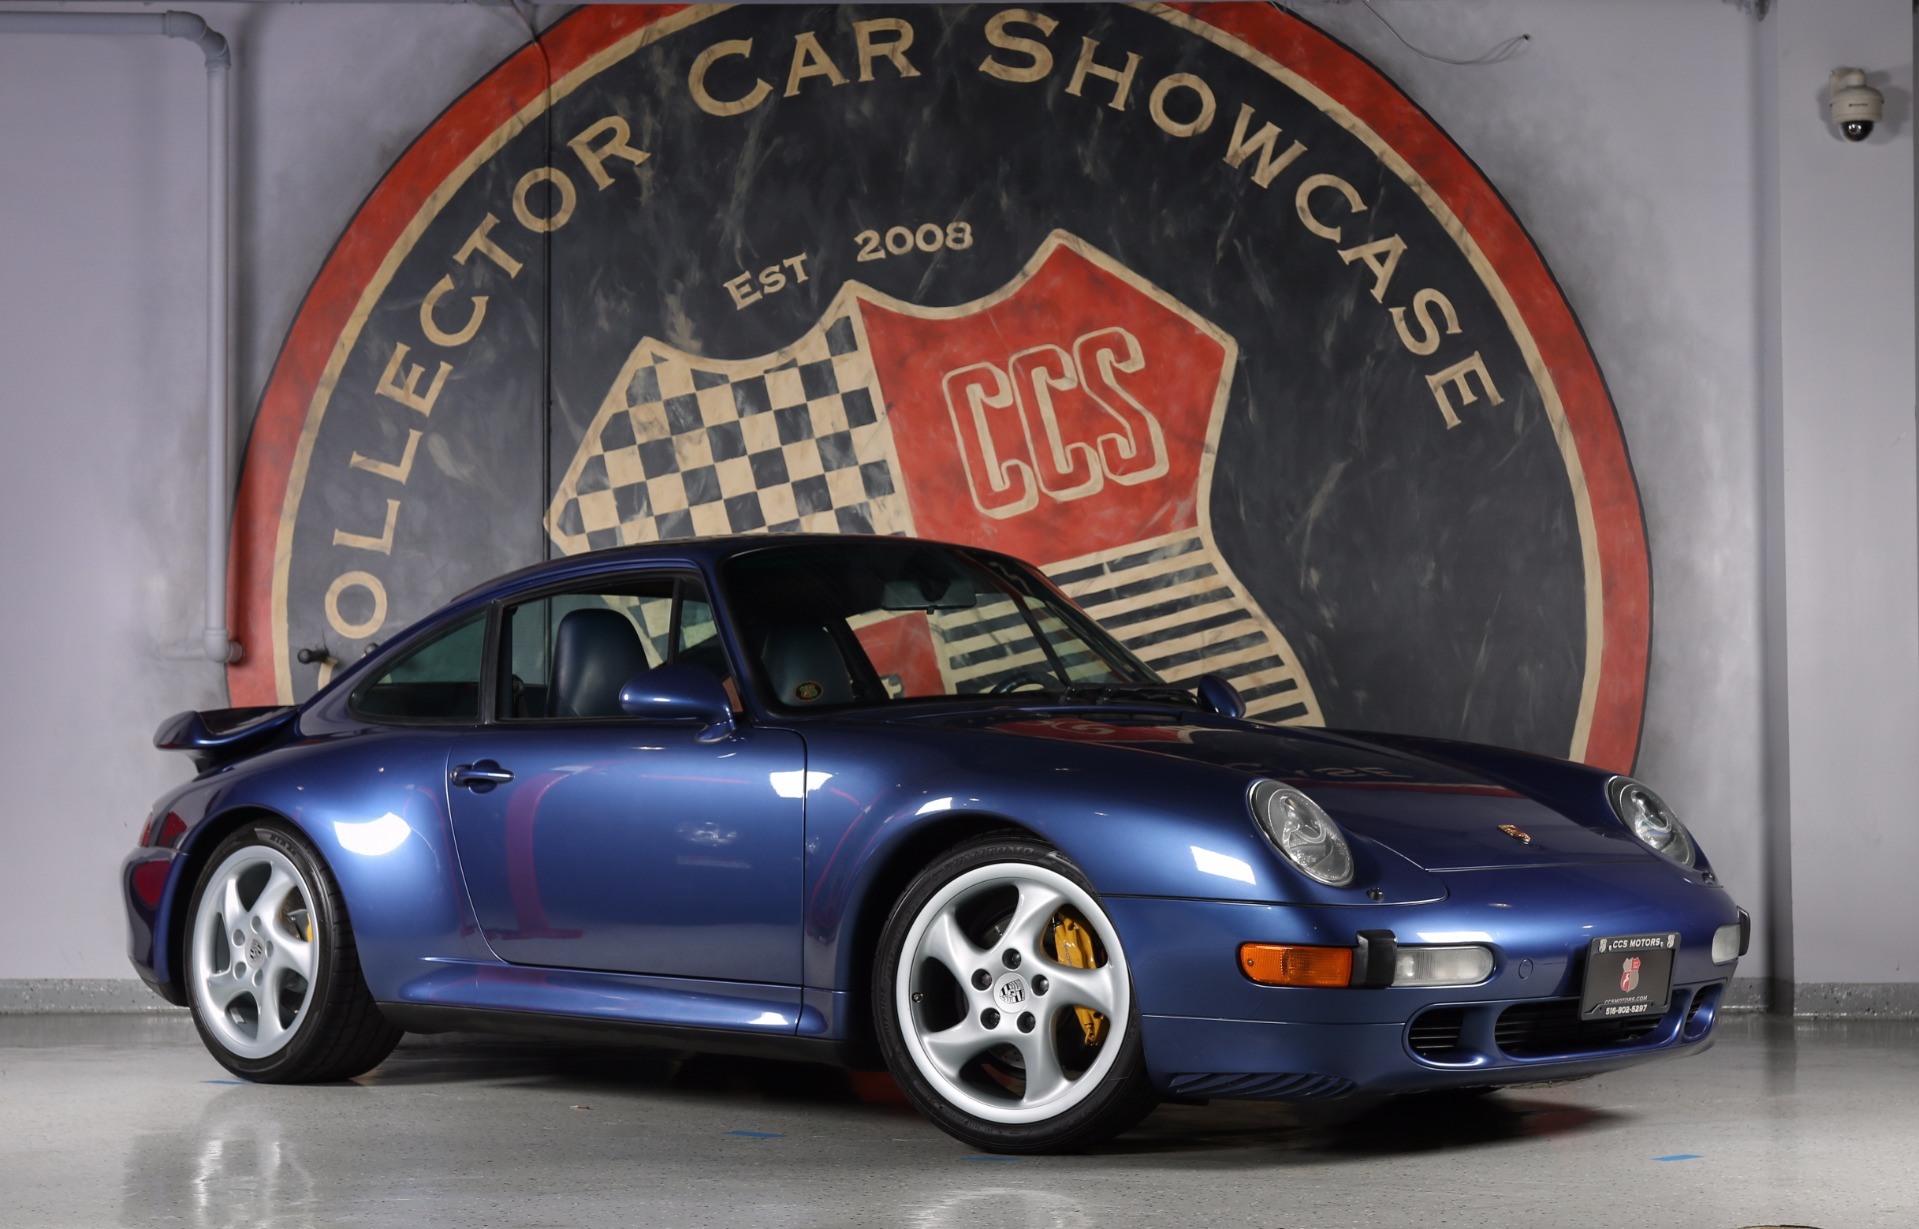 New 1997 Porsche 911 Carrera S Coupe | Oyster Bay, NY